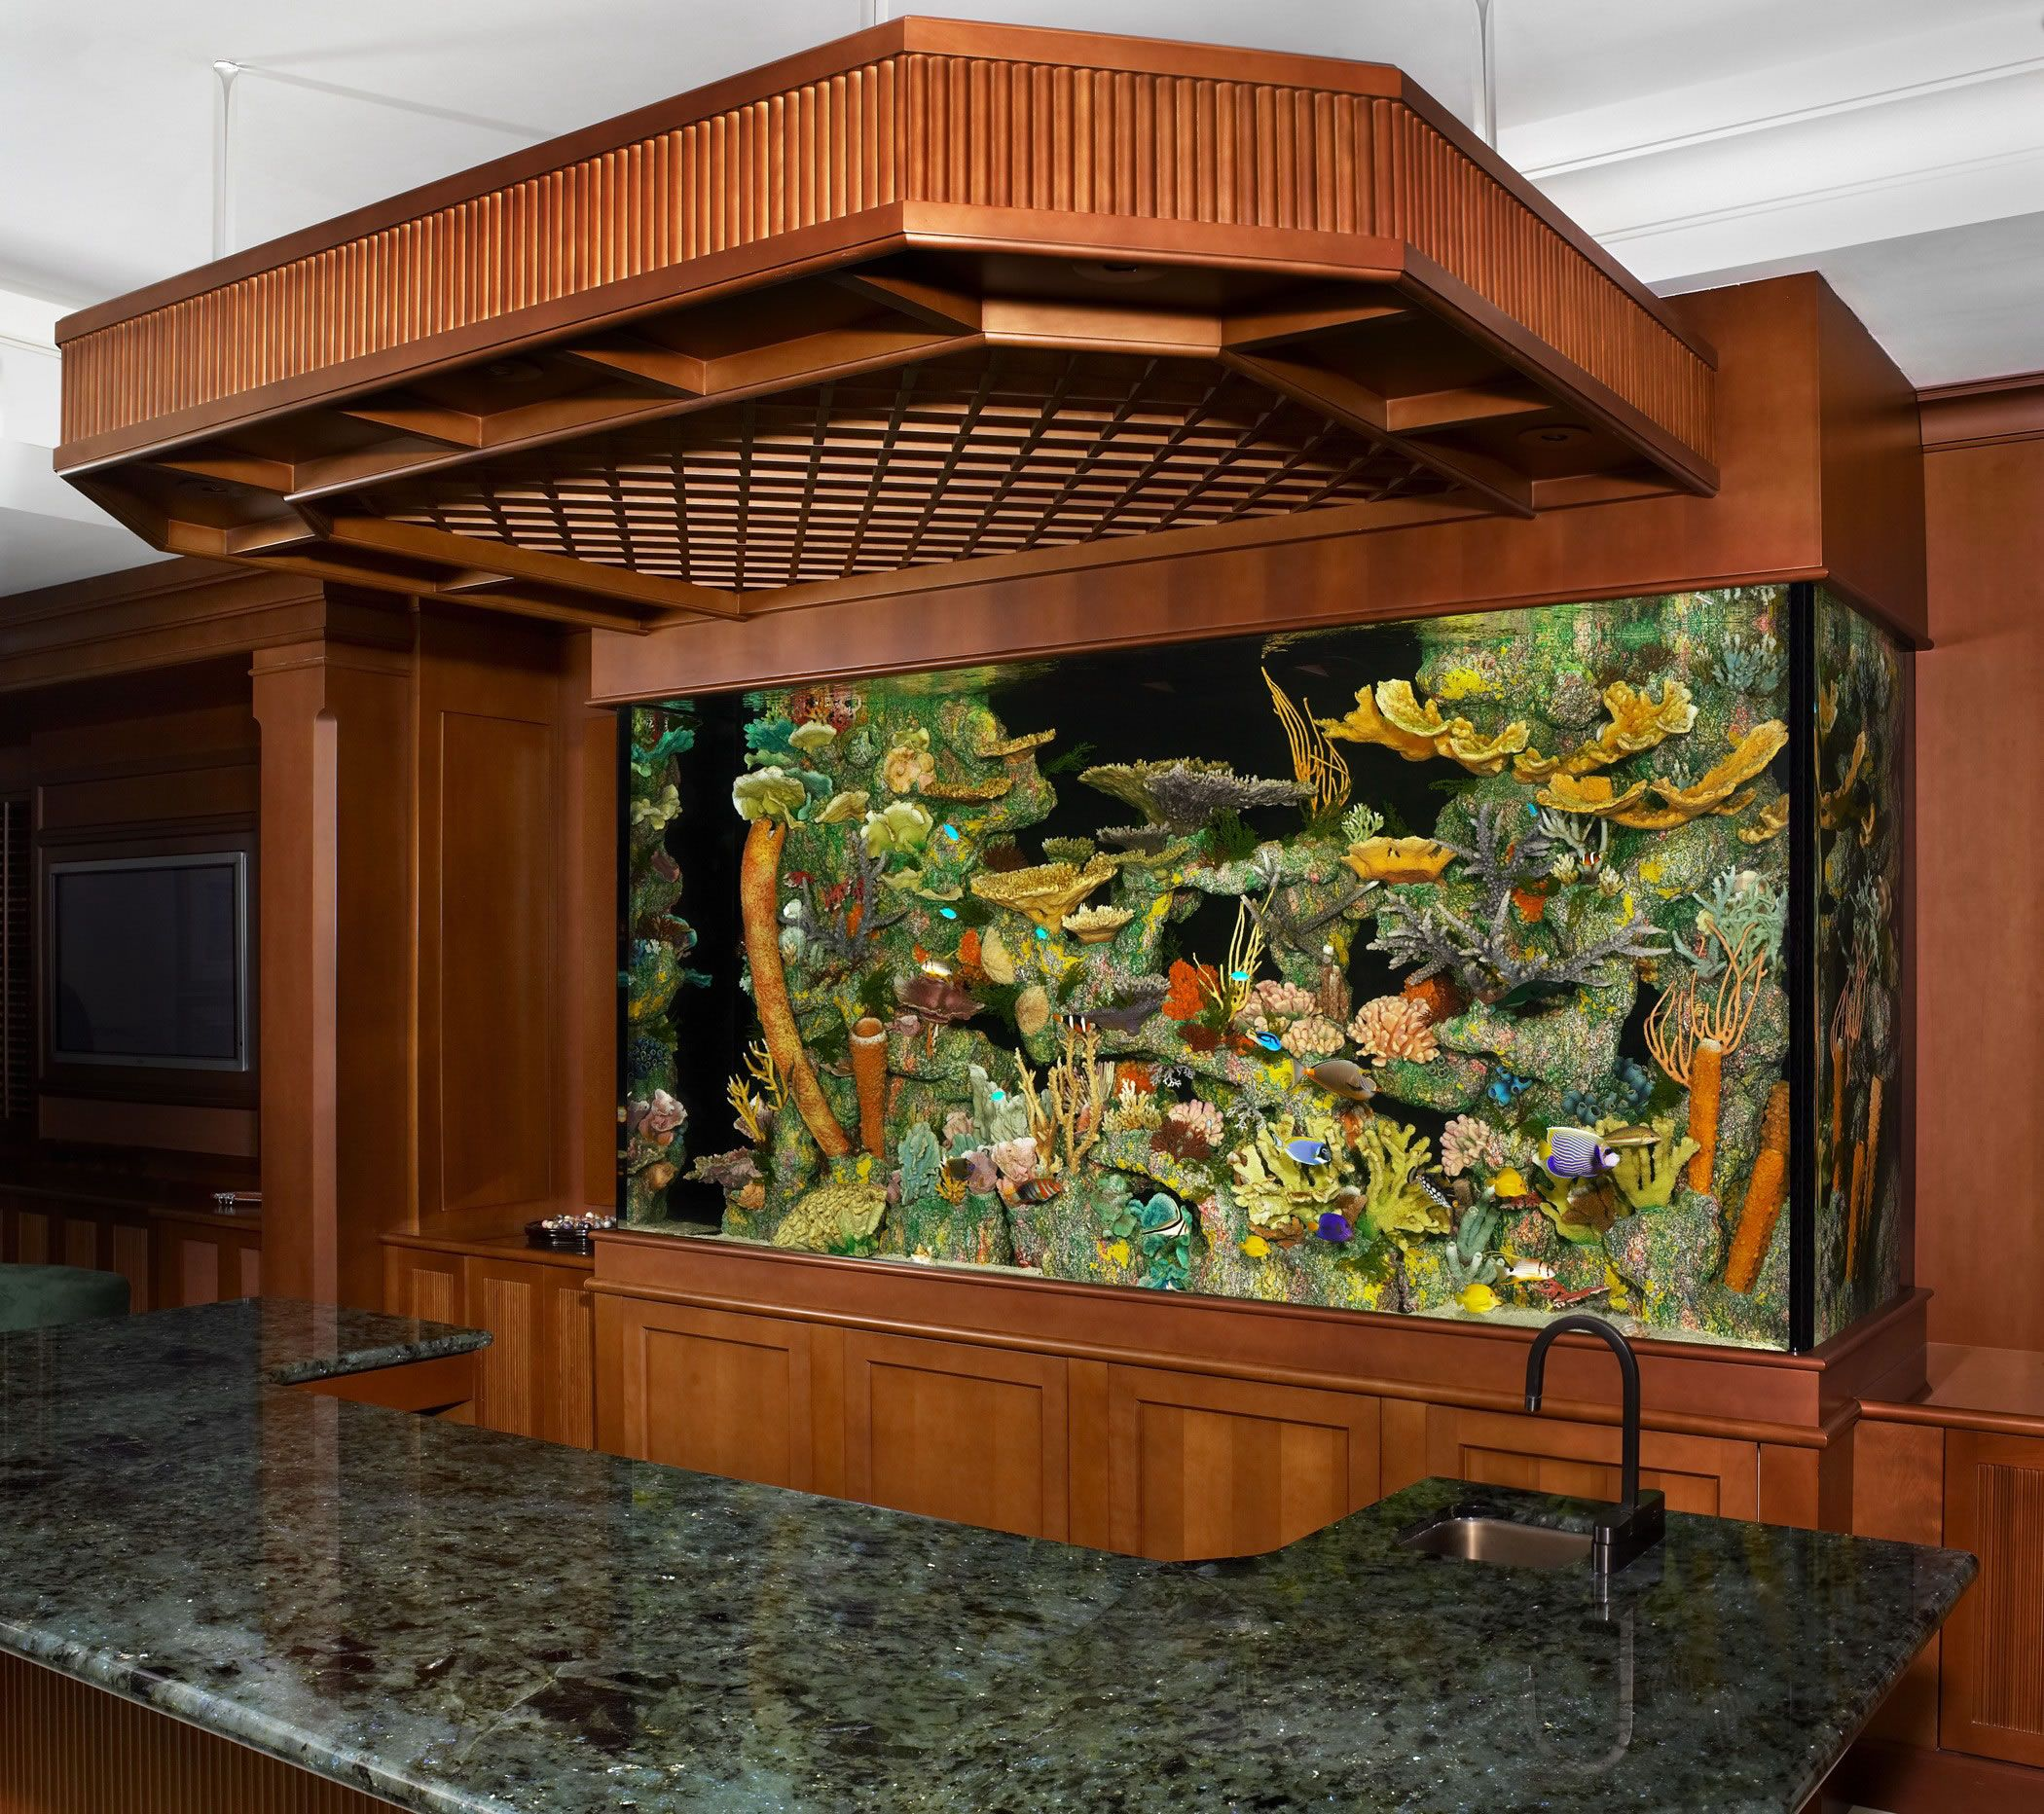 Aquarium Company That Designs Service Supplies Aquariums And Builds Marine  And Fish Aquariums In Los Angeles And Orange County | Aqua World |  Pinterest ...